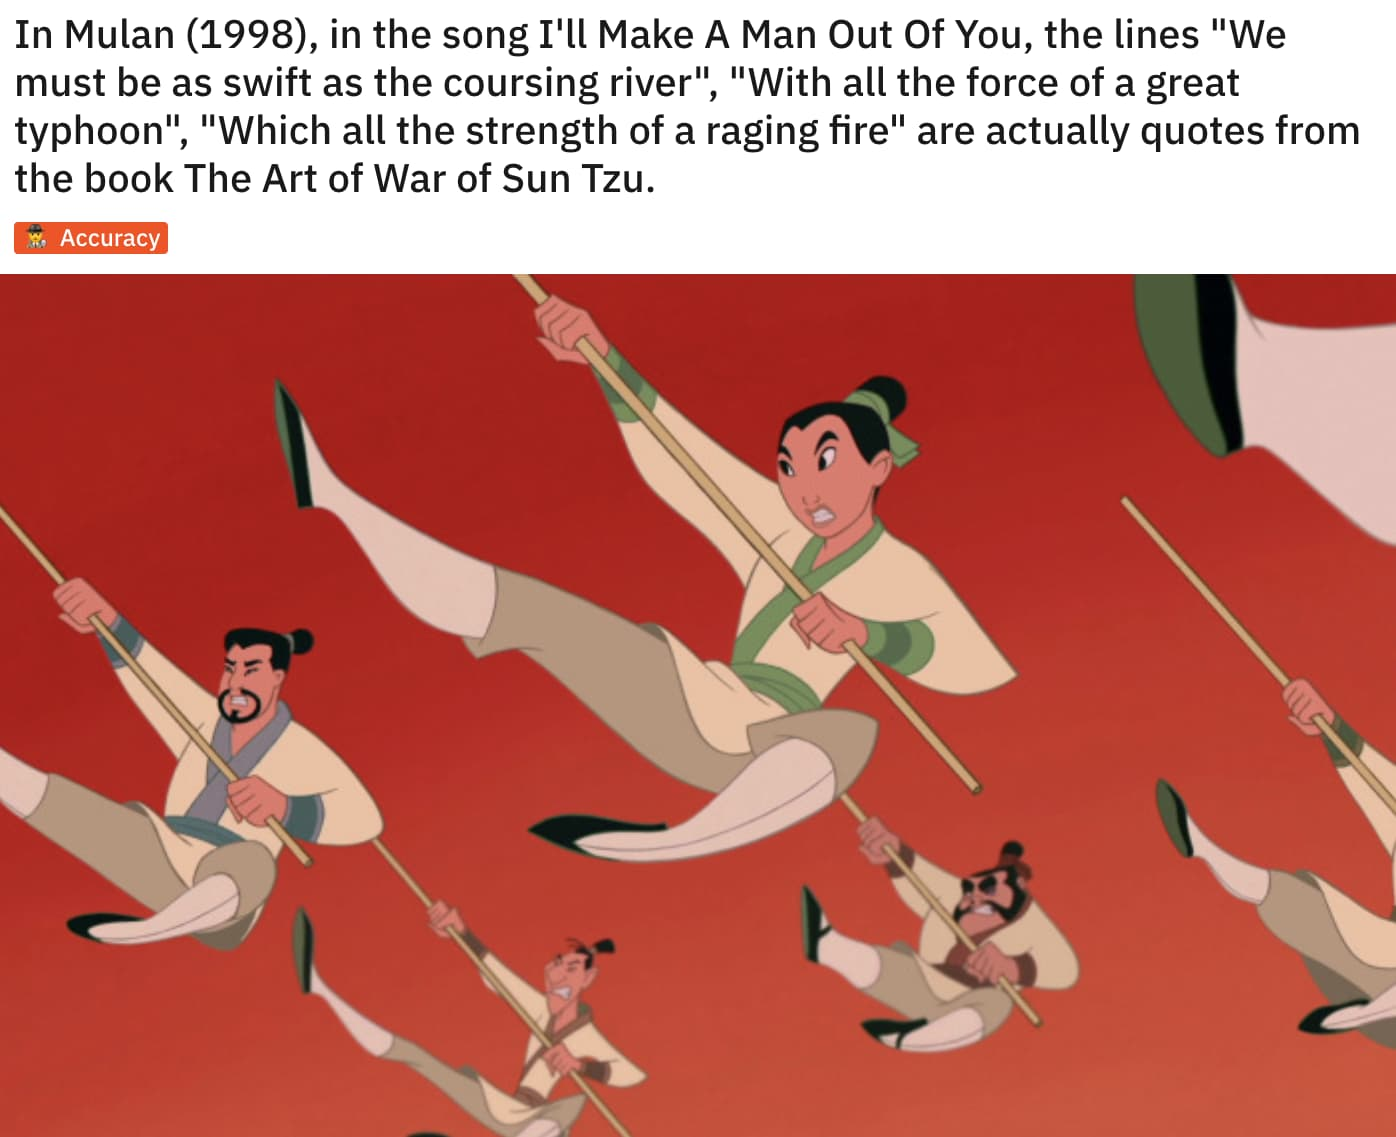 Image of Random 'Mulan' Movie Details That Fans Have Now Noticed